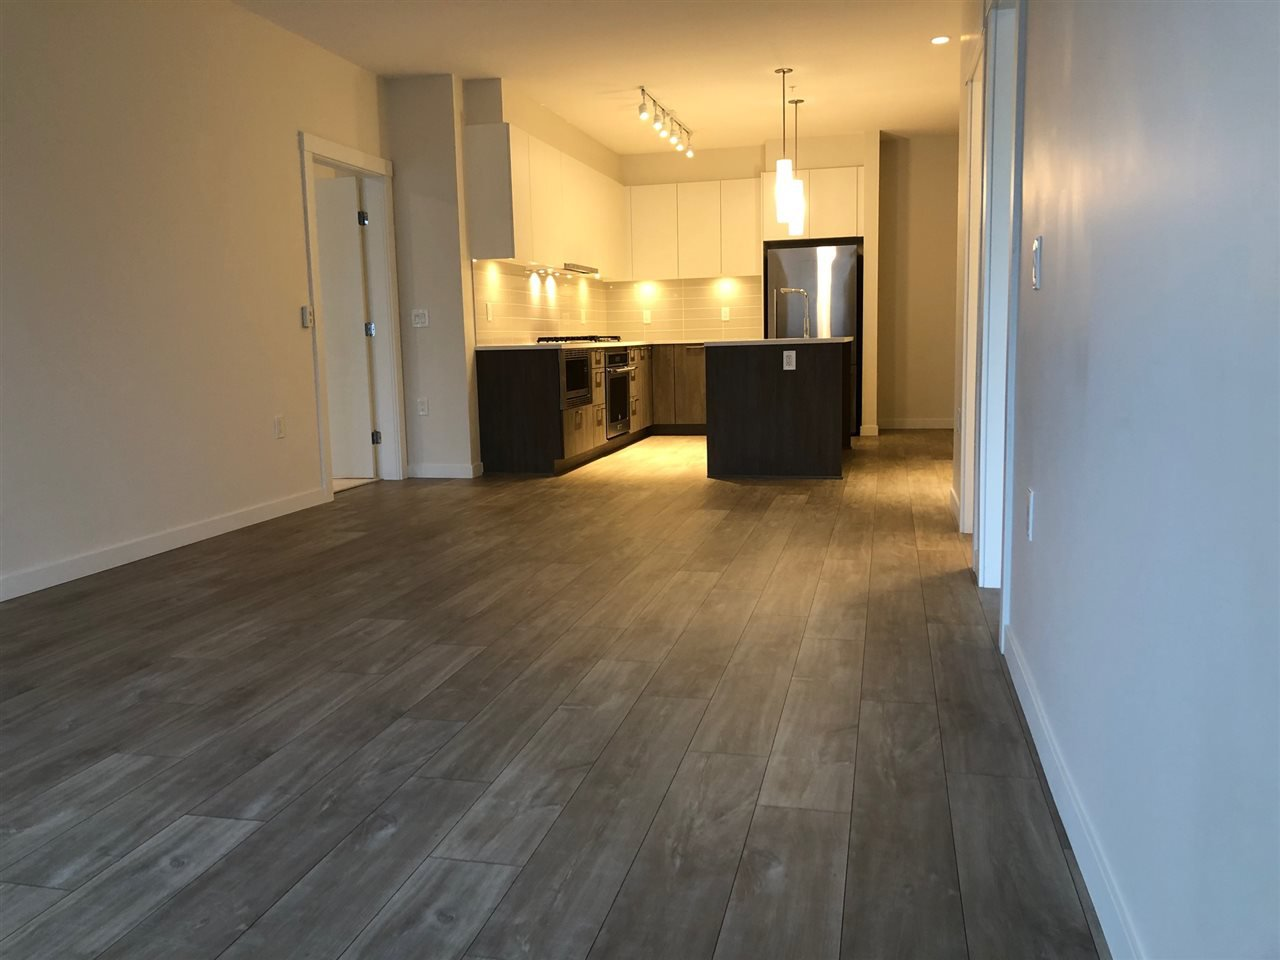 """Photo 4: Photos: 212 615 E 3RD Street in North Vancouver: Lower Lonsdale Condo for sale in """"KINDRED MOODYVILLE"""" : MLS®# R2421547"""